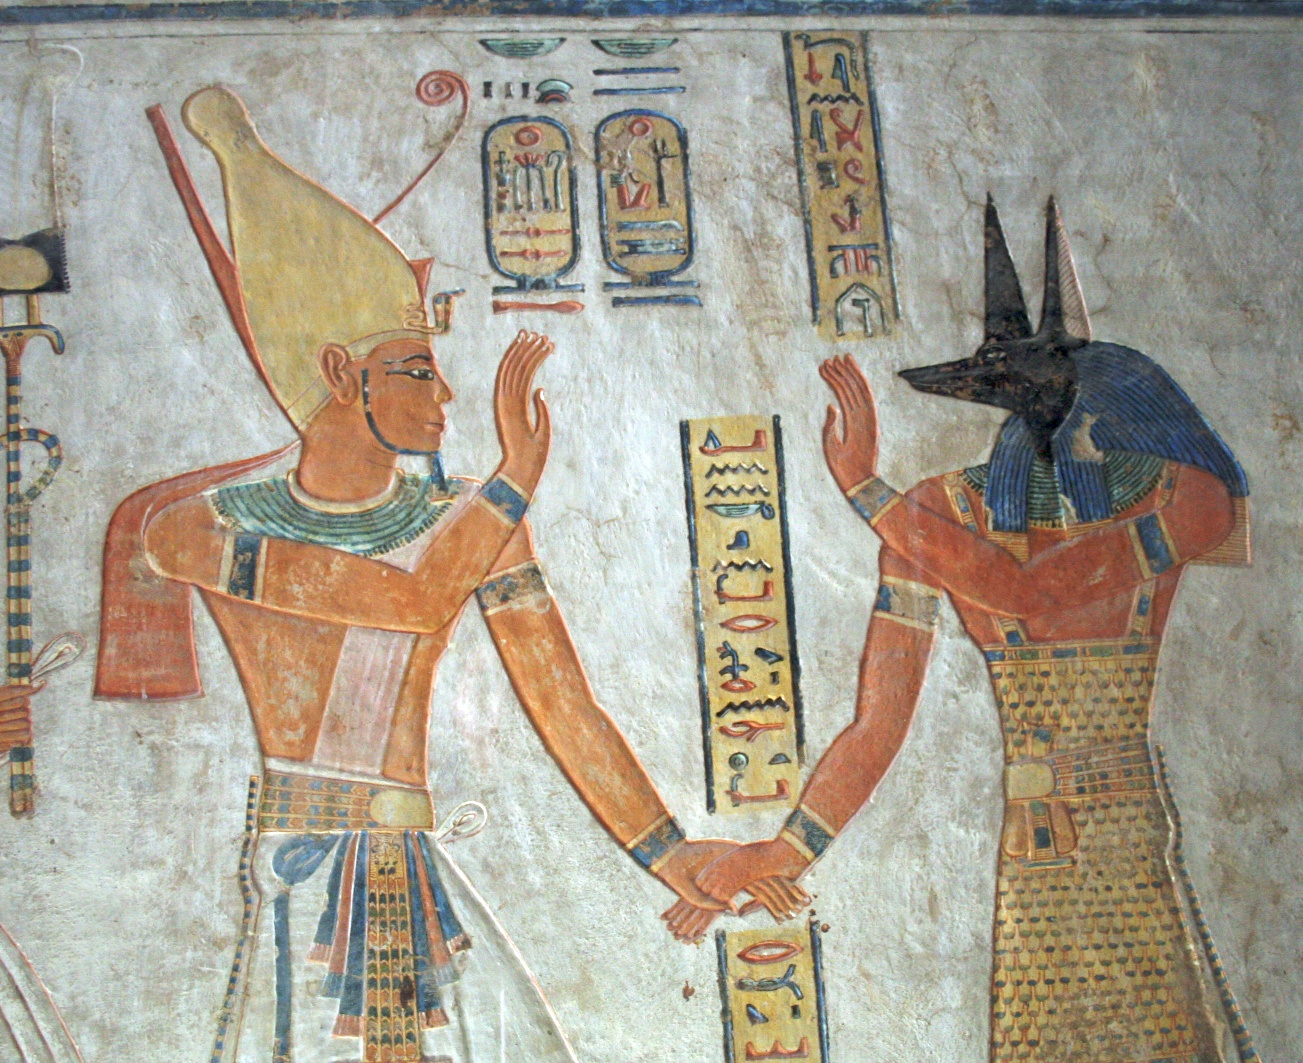 a history of the reign of ramses the great in ancient egypt Pharaoh ramses ii nicknamed the great is credited with extraordinary qualities as a soldier, diplomat, and ruler, and his reign is considered the last period of the splendor of ancient egypt.